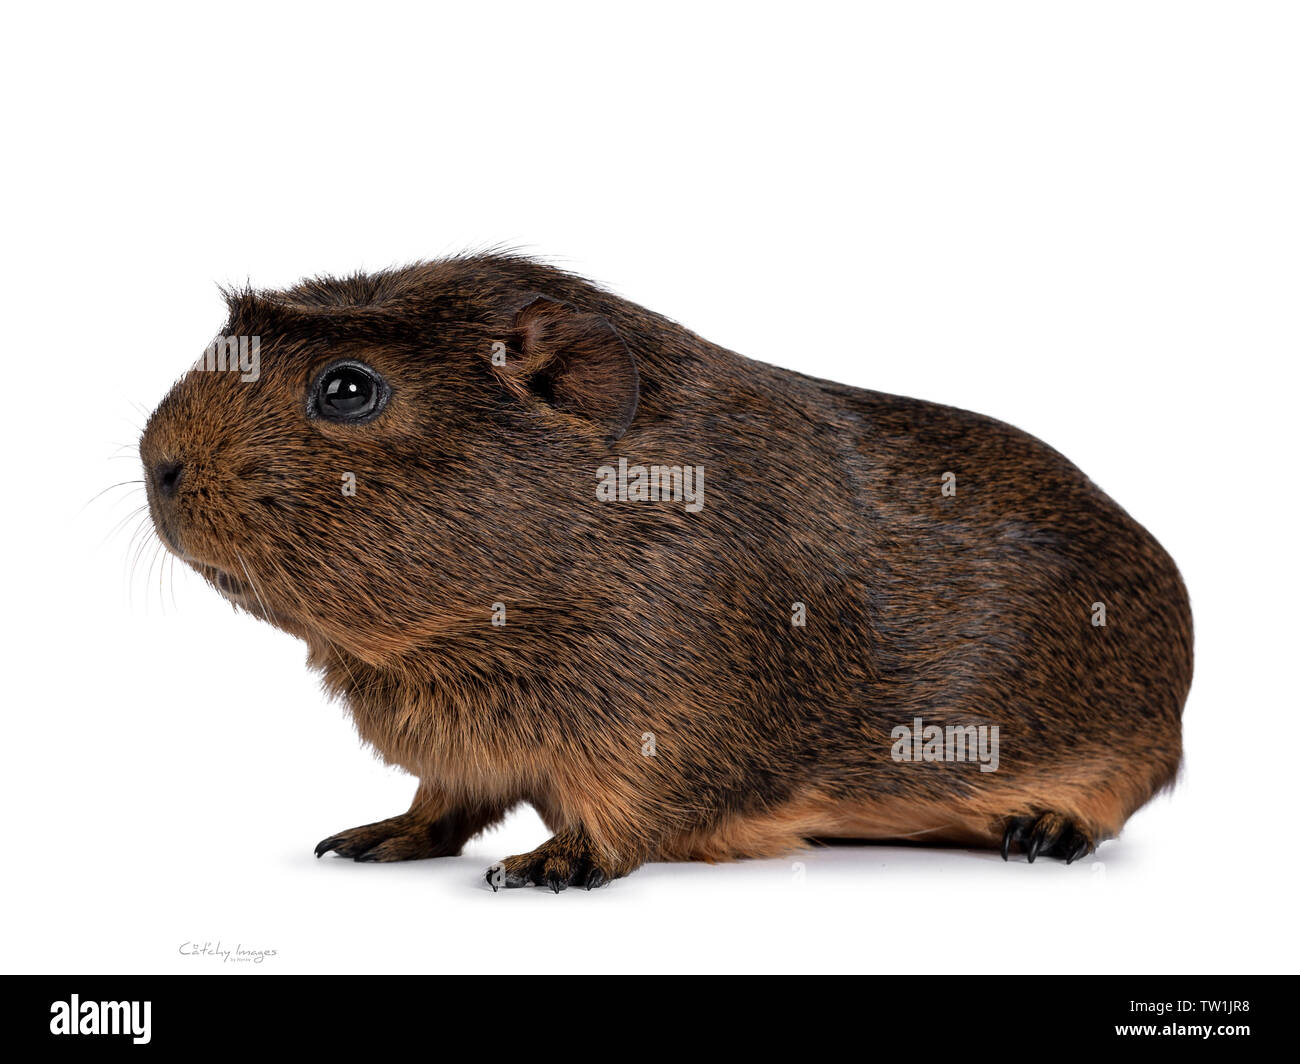 Cute crested cavy, standing side ways. Looking straight ahead. Isolated on white background. - Stock Image